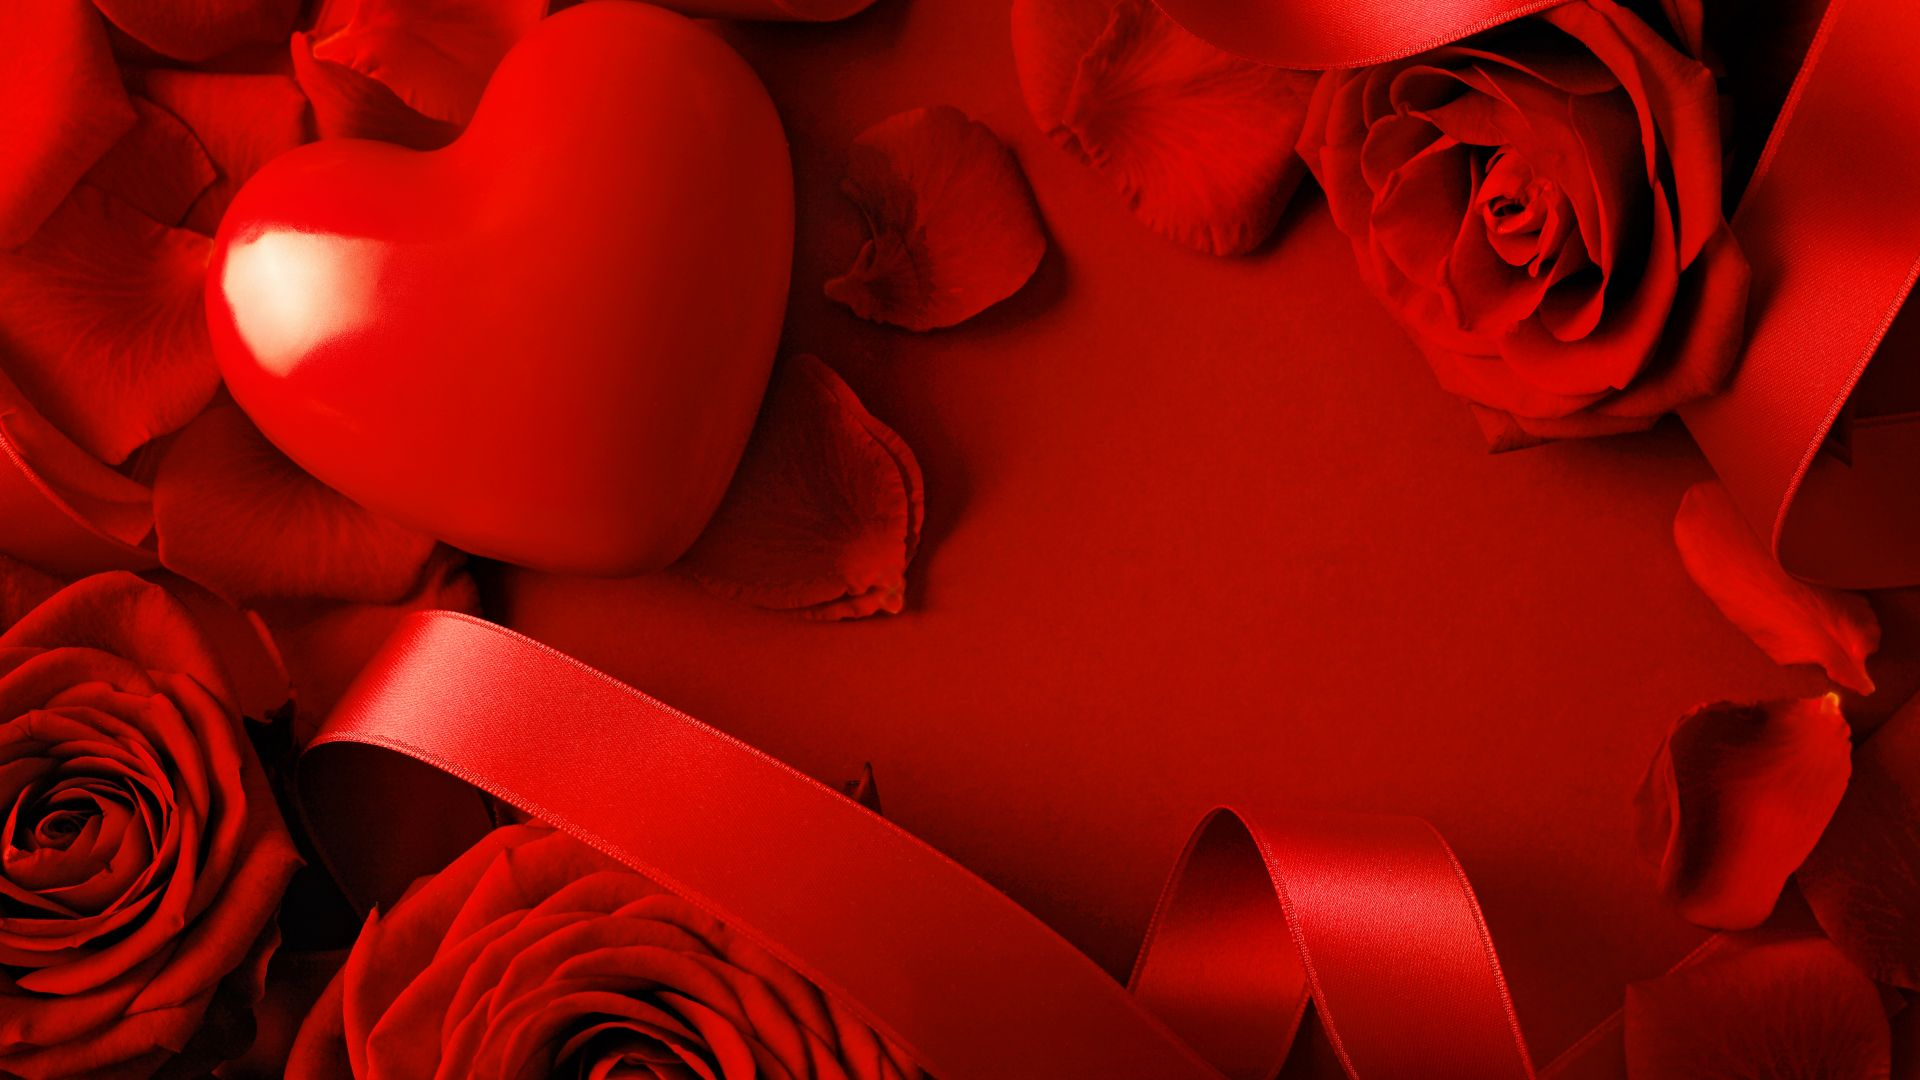 Wallpaper Valentine's Day, Heart, Rose, Red, Ribbon